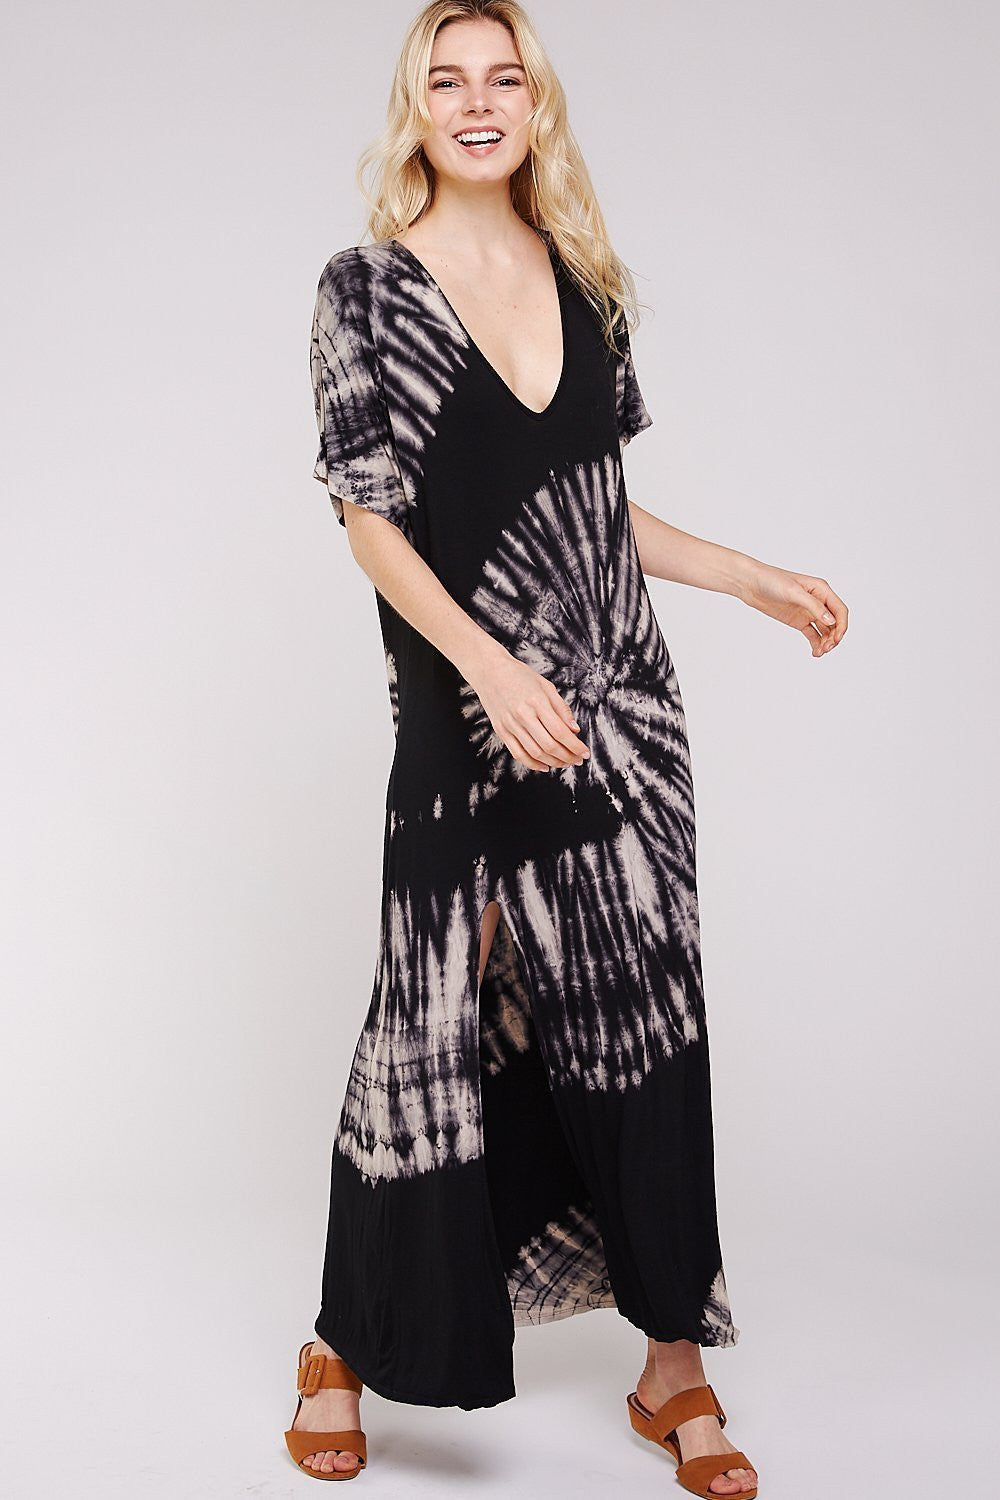 Wholesale Clothing, Online Wholesale Clothing, Women Clothing, Bohemian, Free People, tiedye, specialty wash, wholesale seller, wholesale women clothing shop, gypsy look, USA made, URBAN X APPAREL-MAXI-UDR195, fashiontrend2019